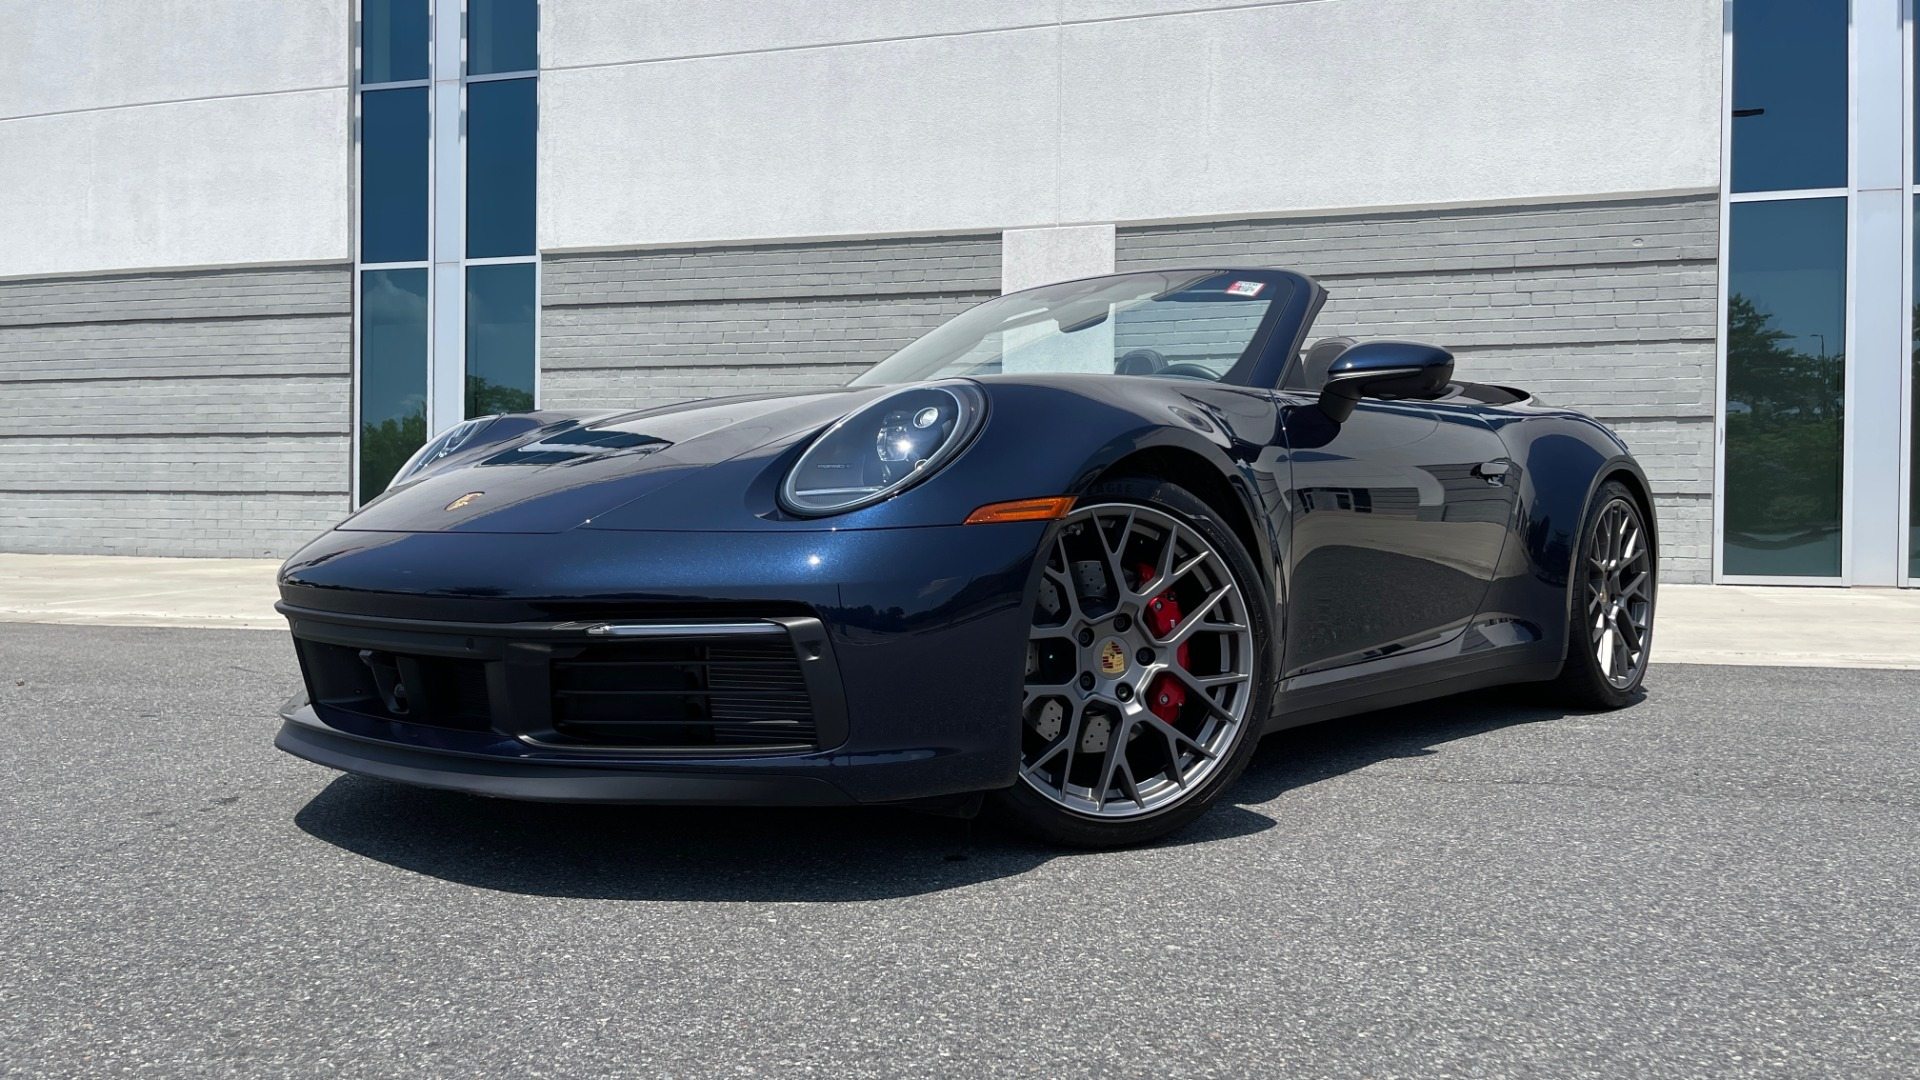 Used 2020 Porsche 911 CARRERA S CABRIOLET PREMIUM SPORT / LCA / ACC / BOSE / REARVIEW for sale $159,995 at Formula Imports in Charlotte NC 28227 2